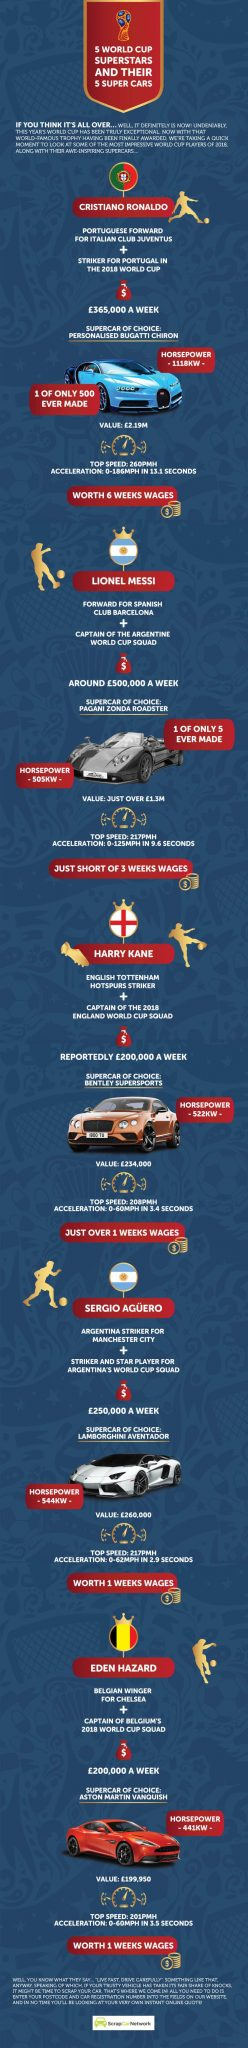 Infographic World Cup 2018 Superstars and their supercars